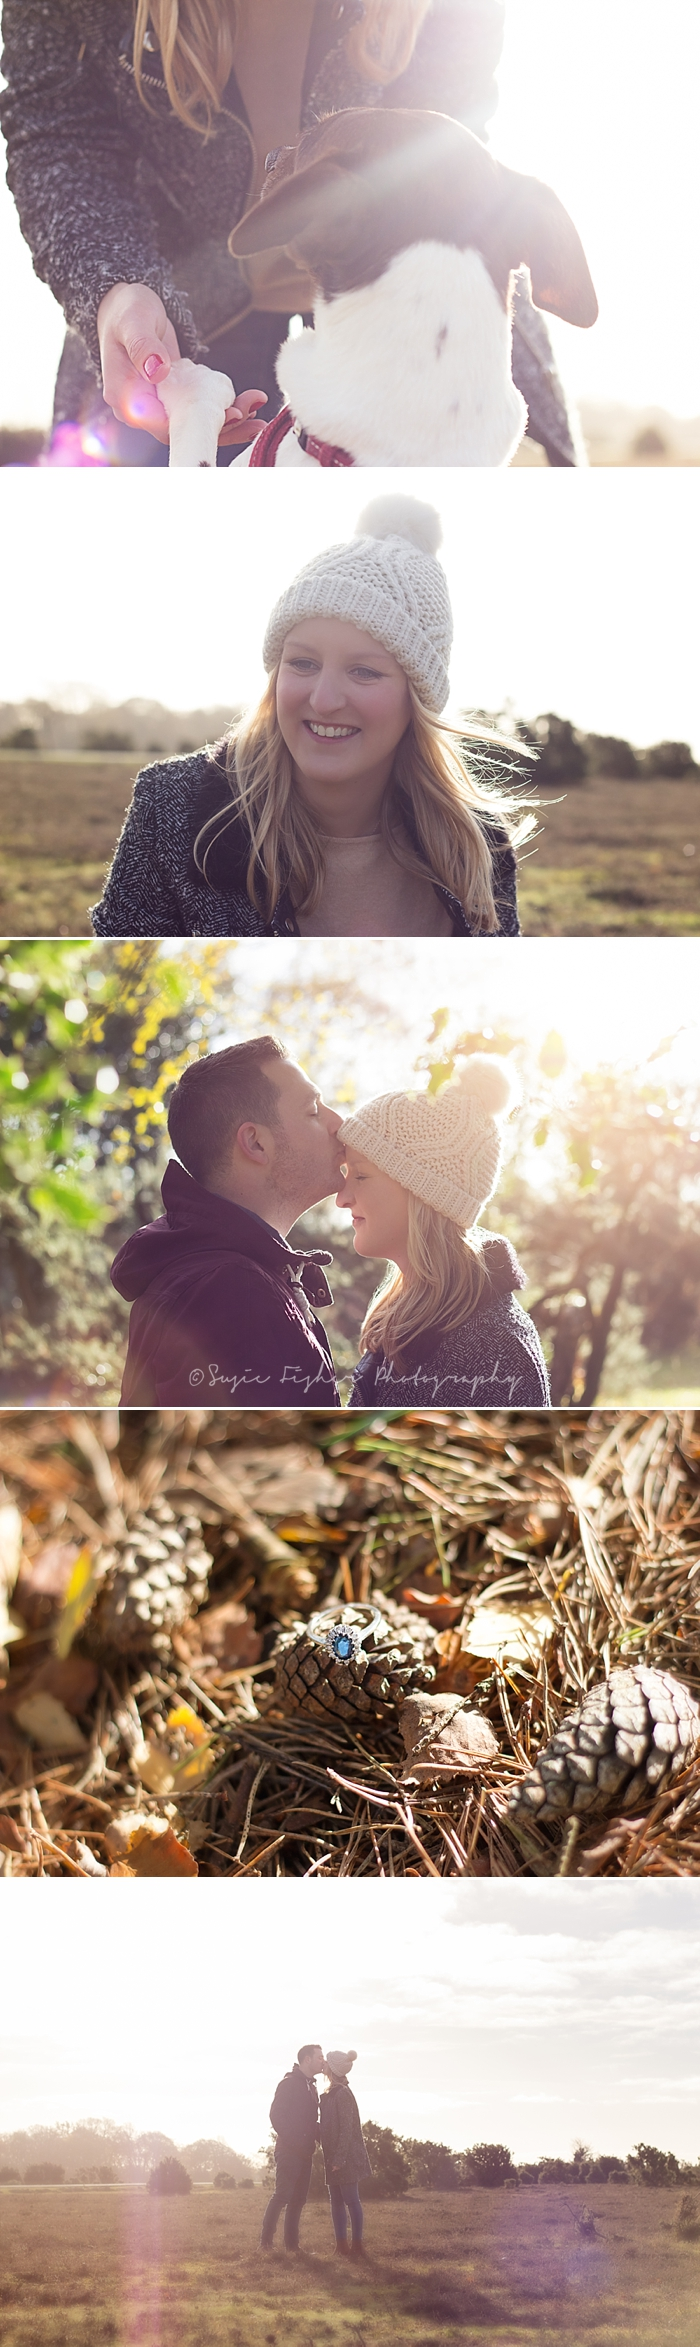 Tom & Abi Engagement Session_ Susie Fisher Photography-42.jpg